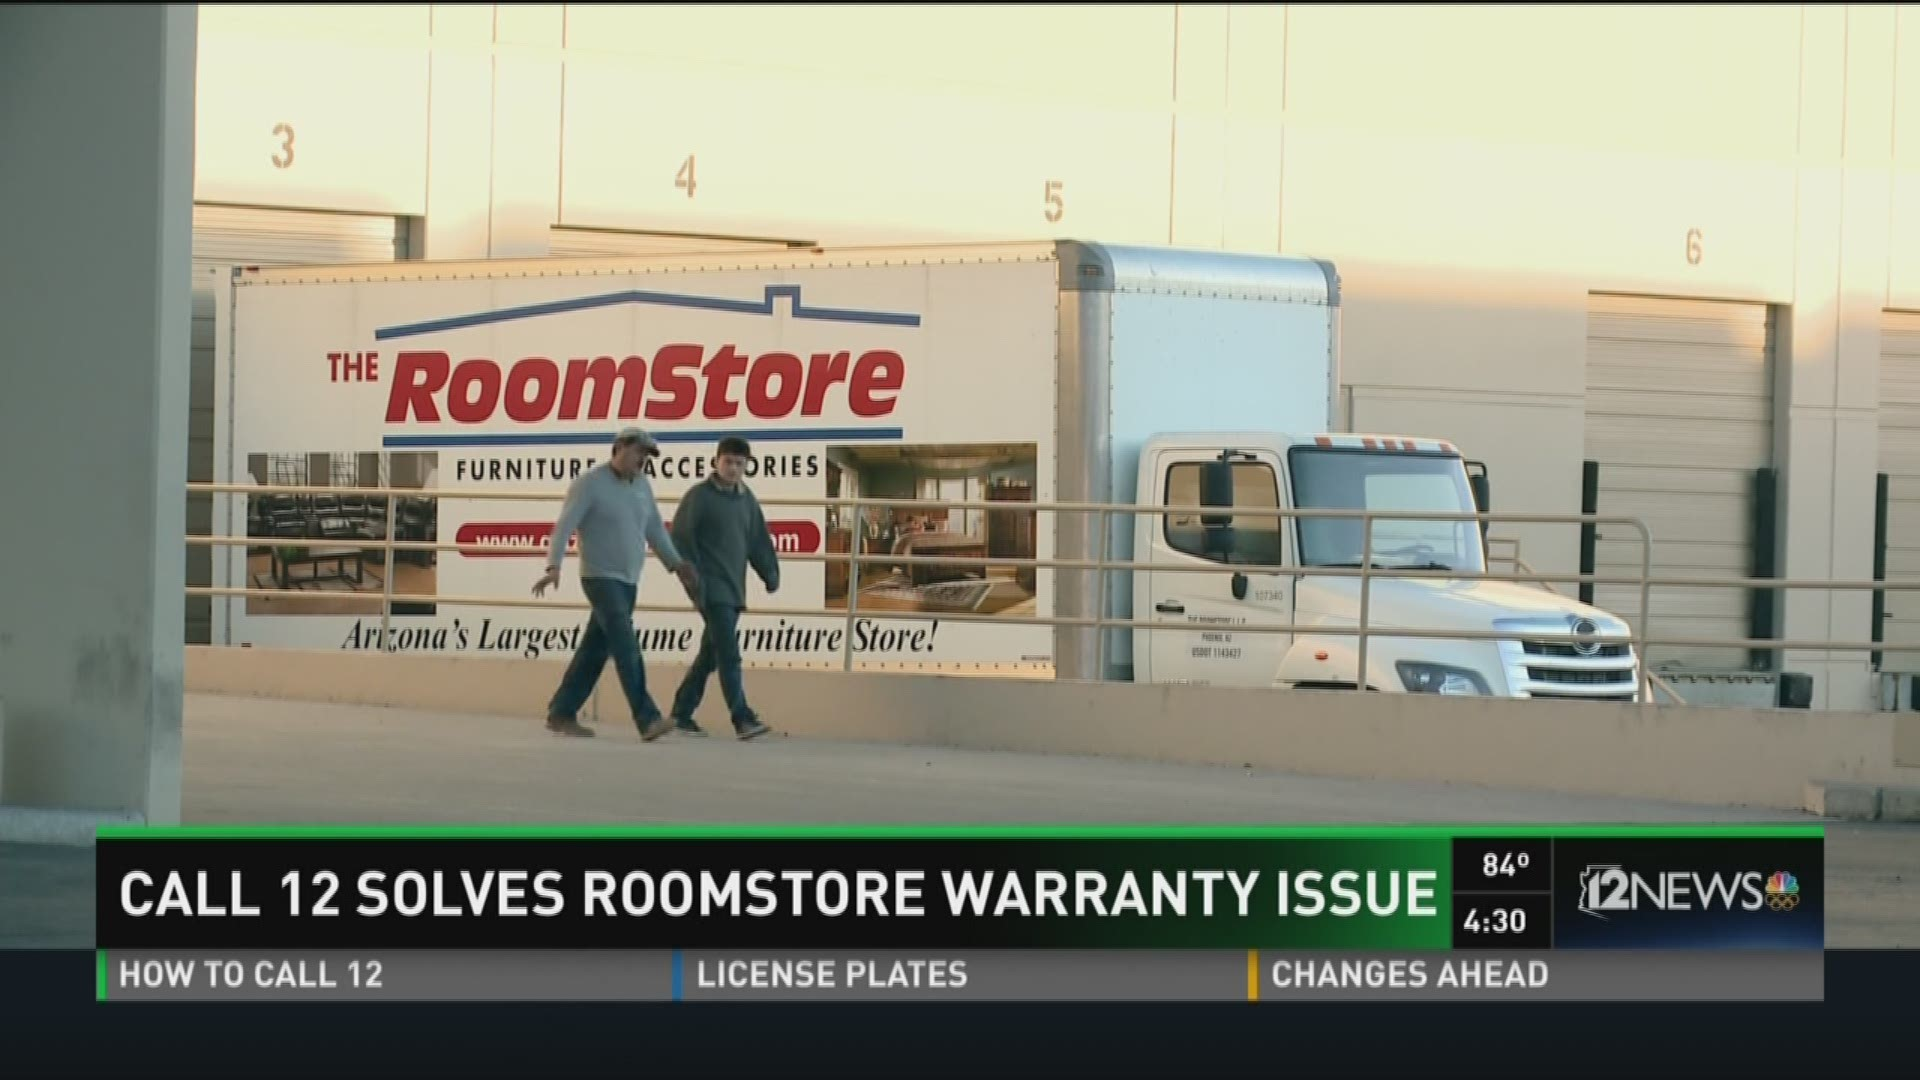 Call 12 Solves Room Warranty Issue